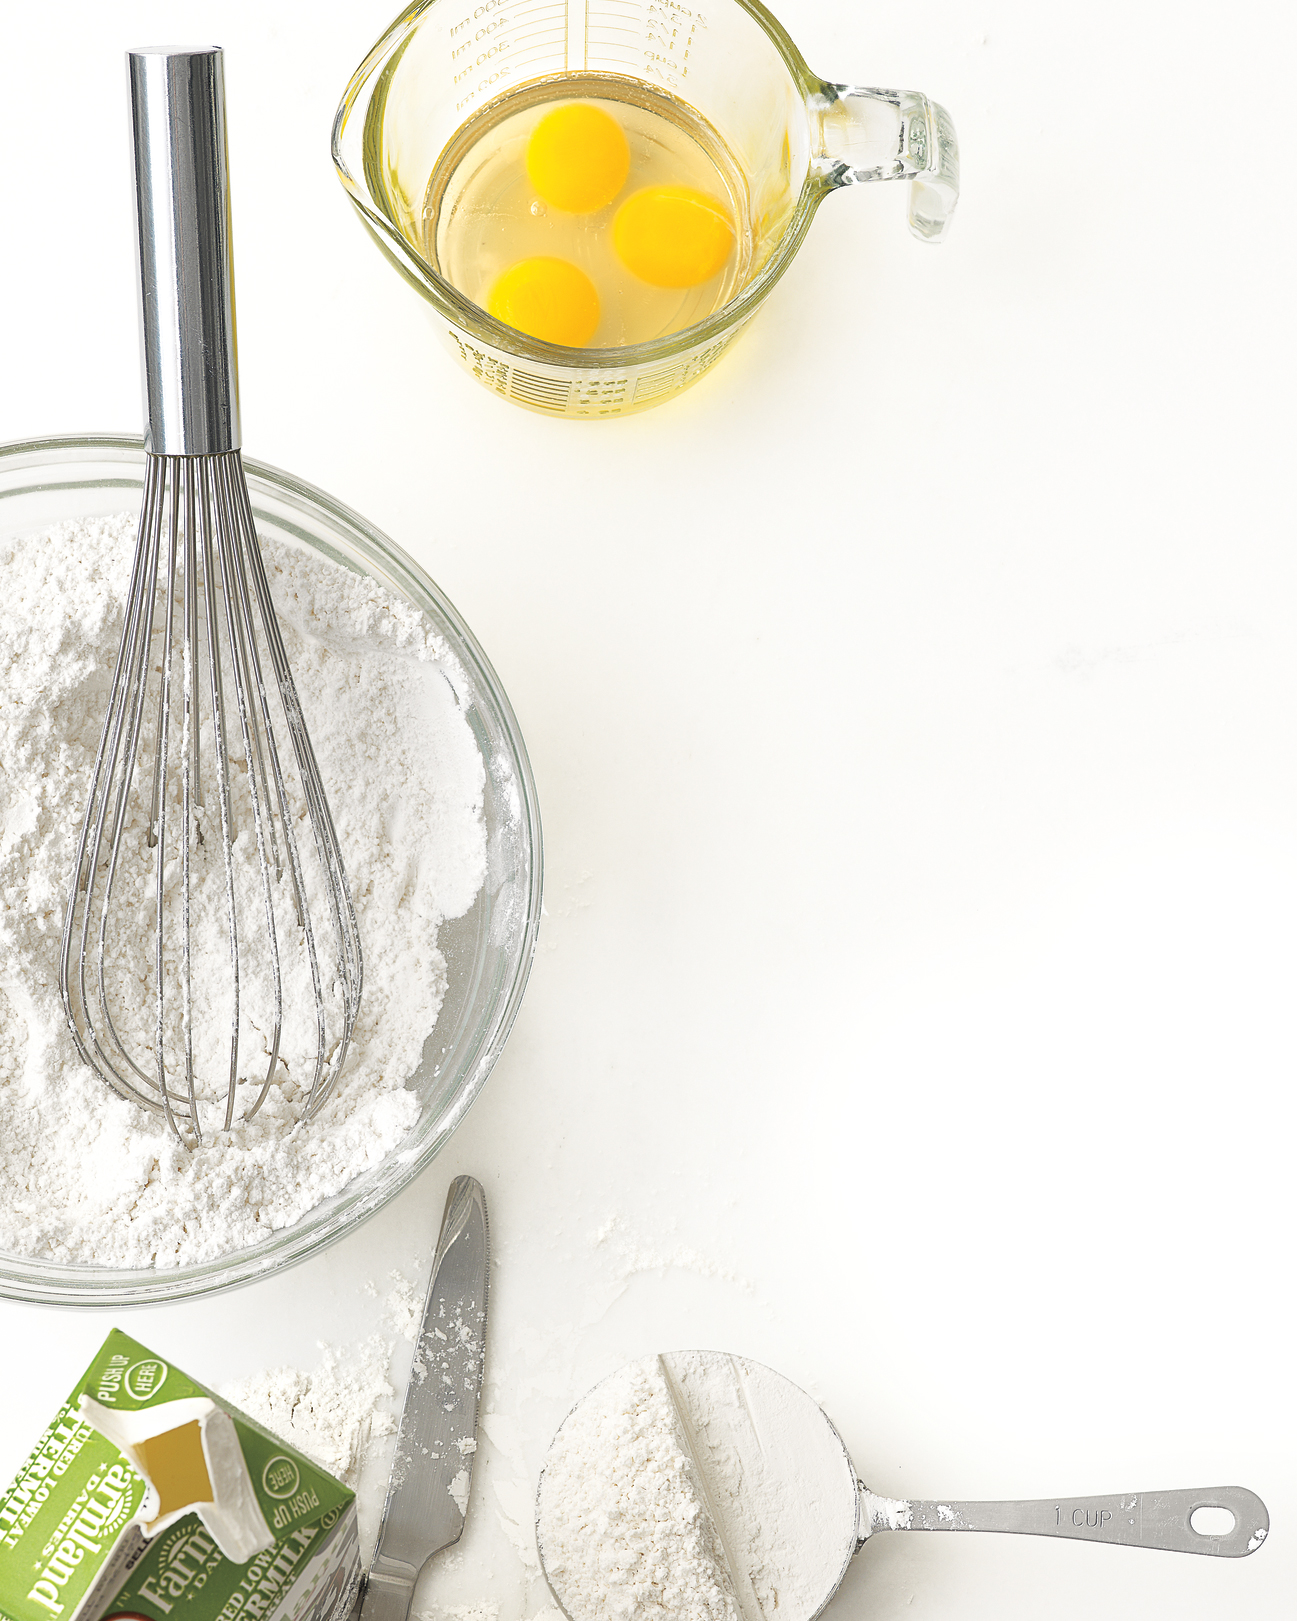 eggs in glass measuring cup, flour in a bowl and in a measuring cup, and buttermilk in a carton